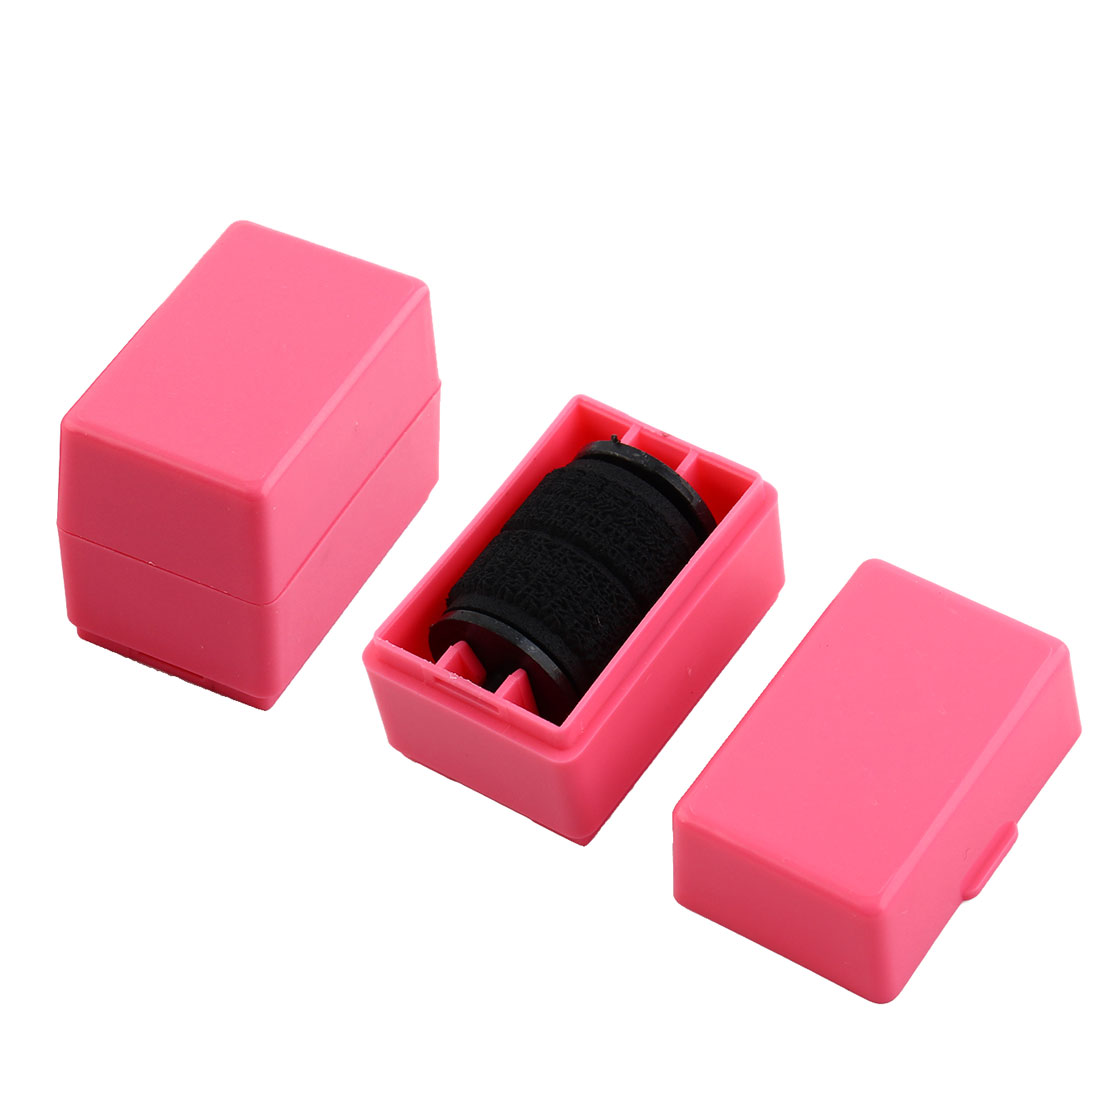 Security Hide Confidential Privacy Identity ID Protection Self Inking Rolling Stock Stamp Pink 2pcs